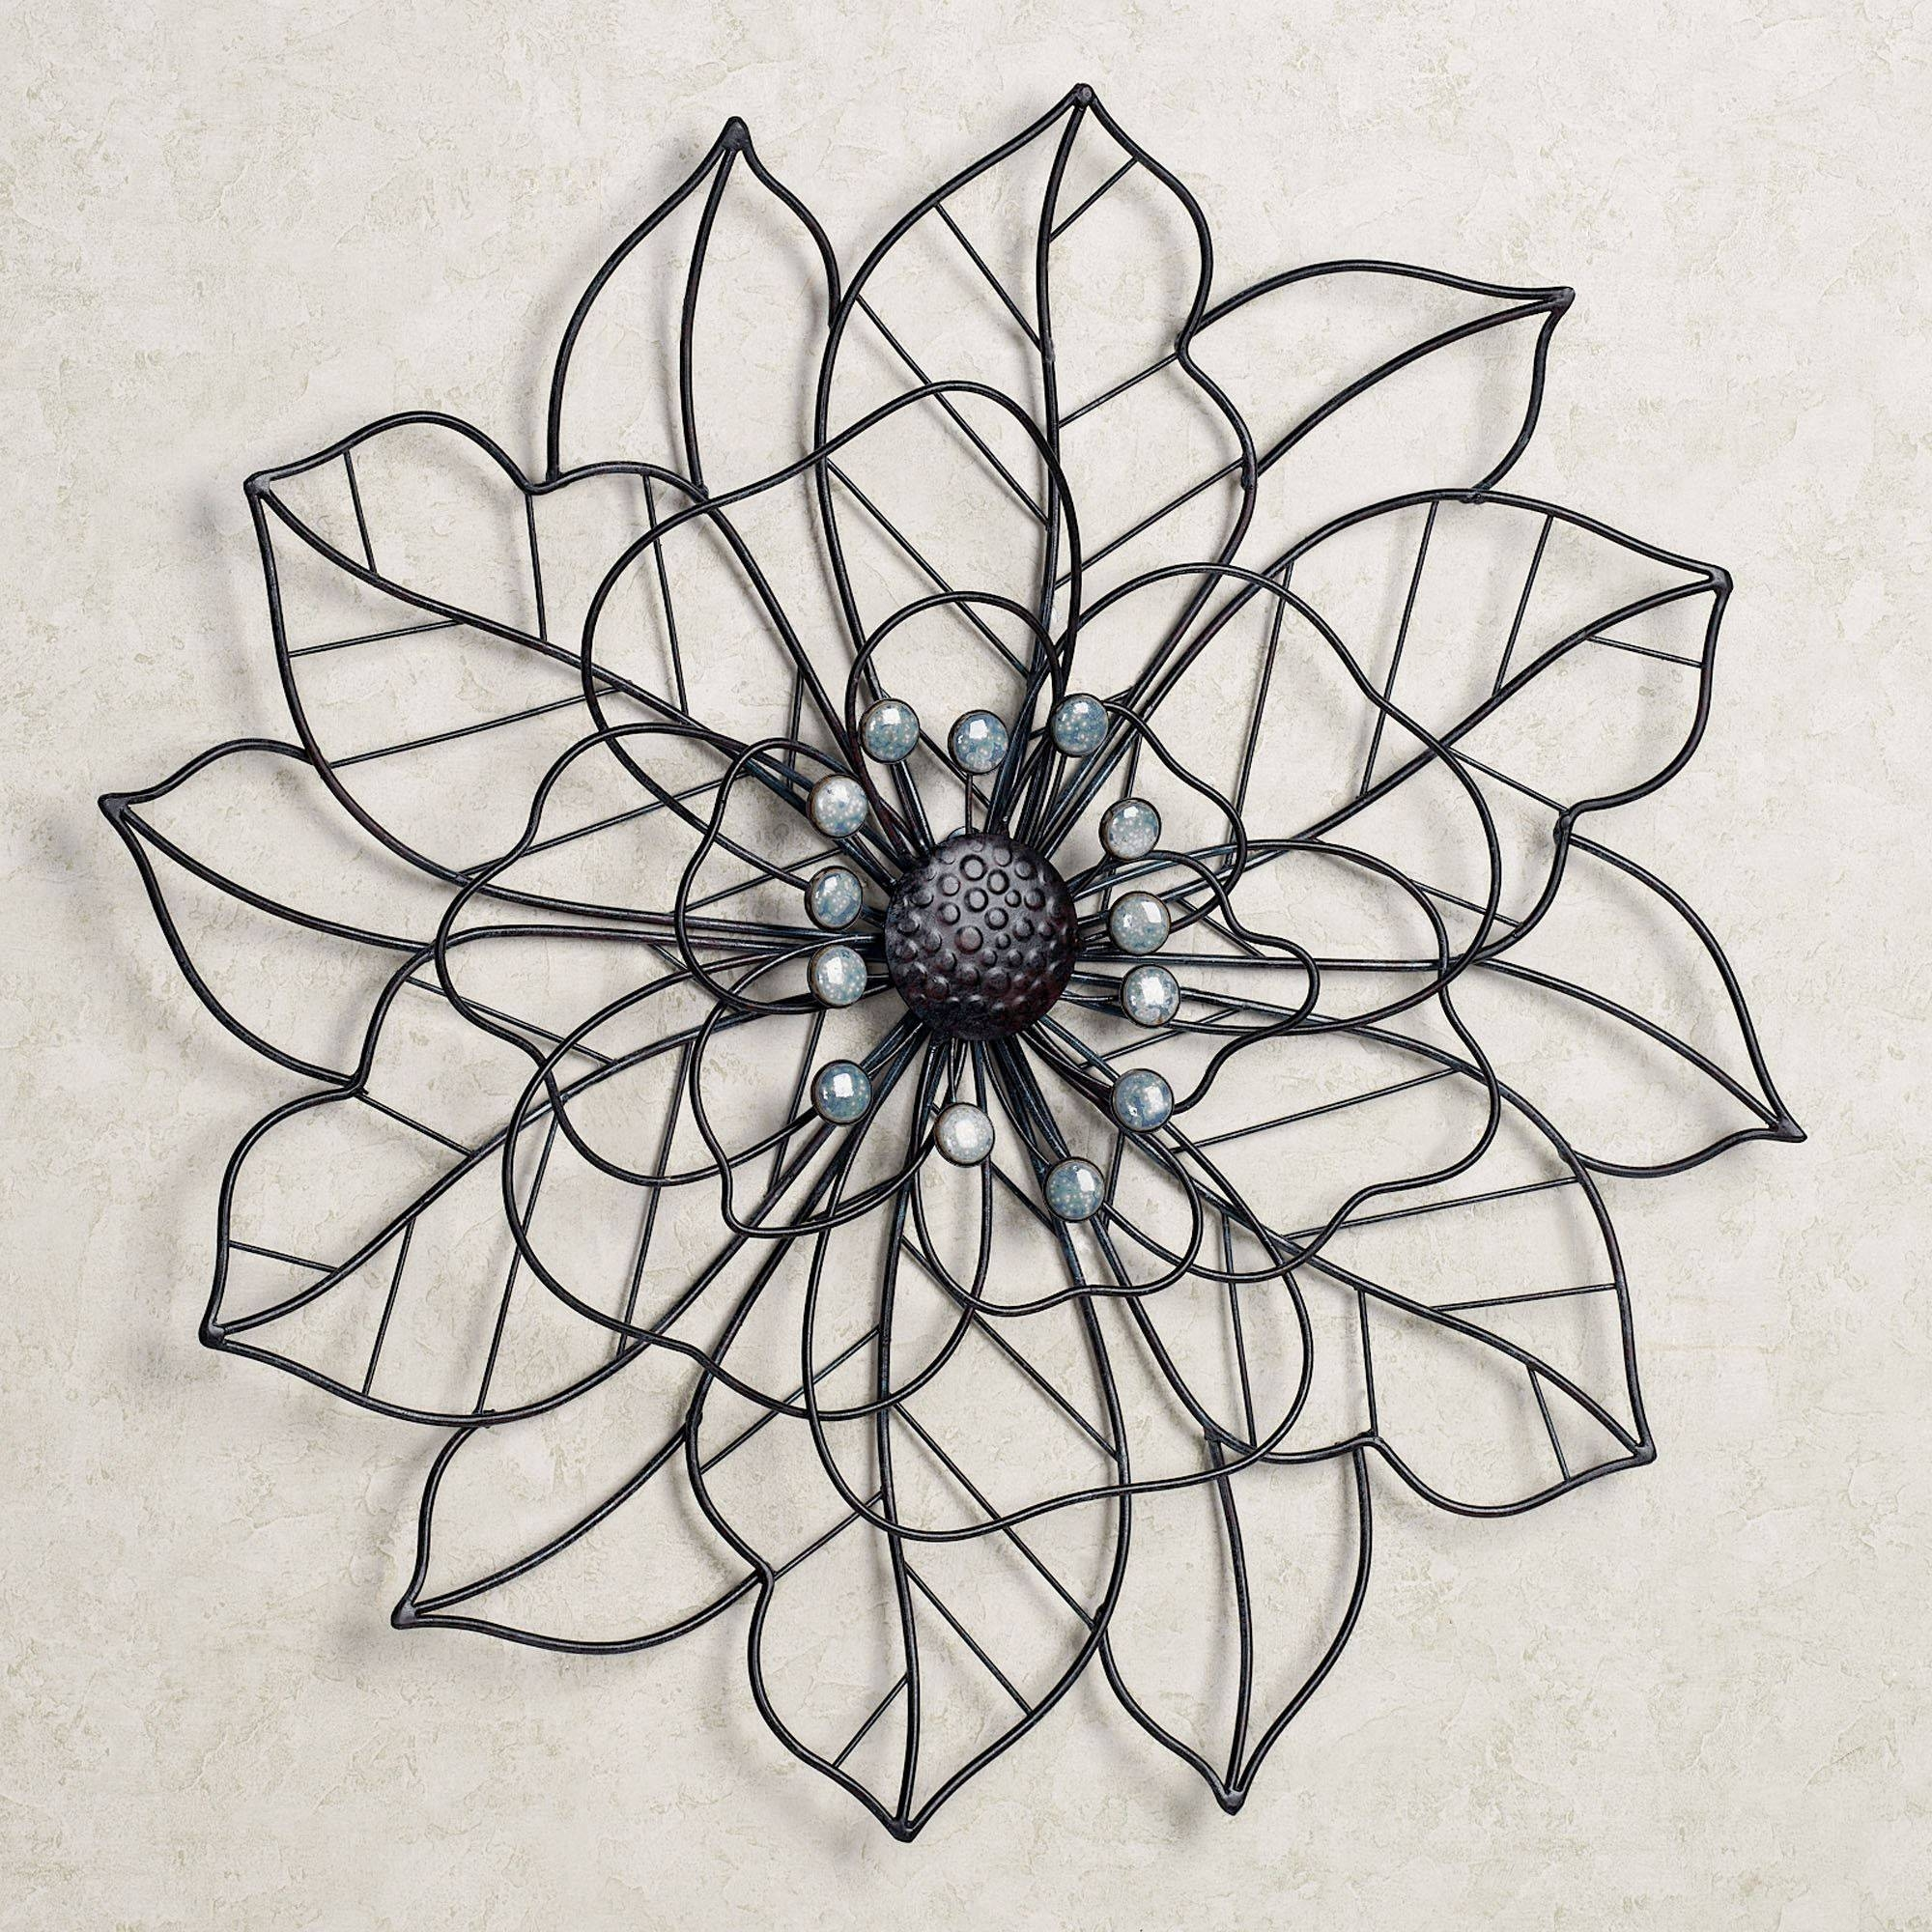 Beauty In Bloom Flower Blossom Metal Wall Art Inside Most Recent Flower Metal Wall Art Decor (View 5 of 20)